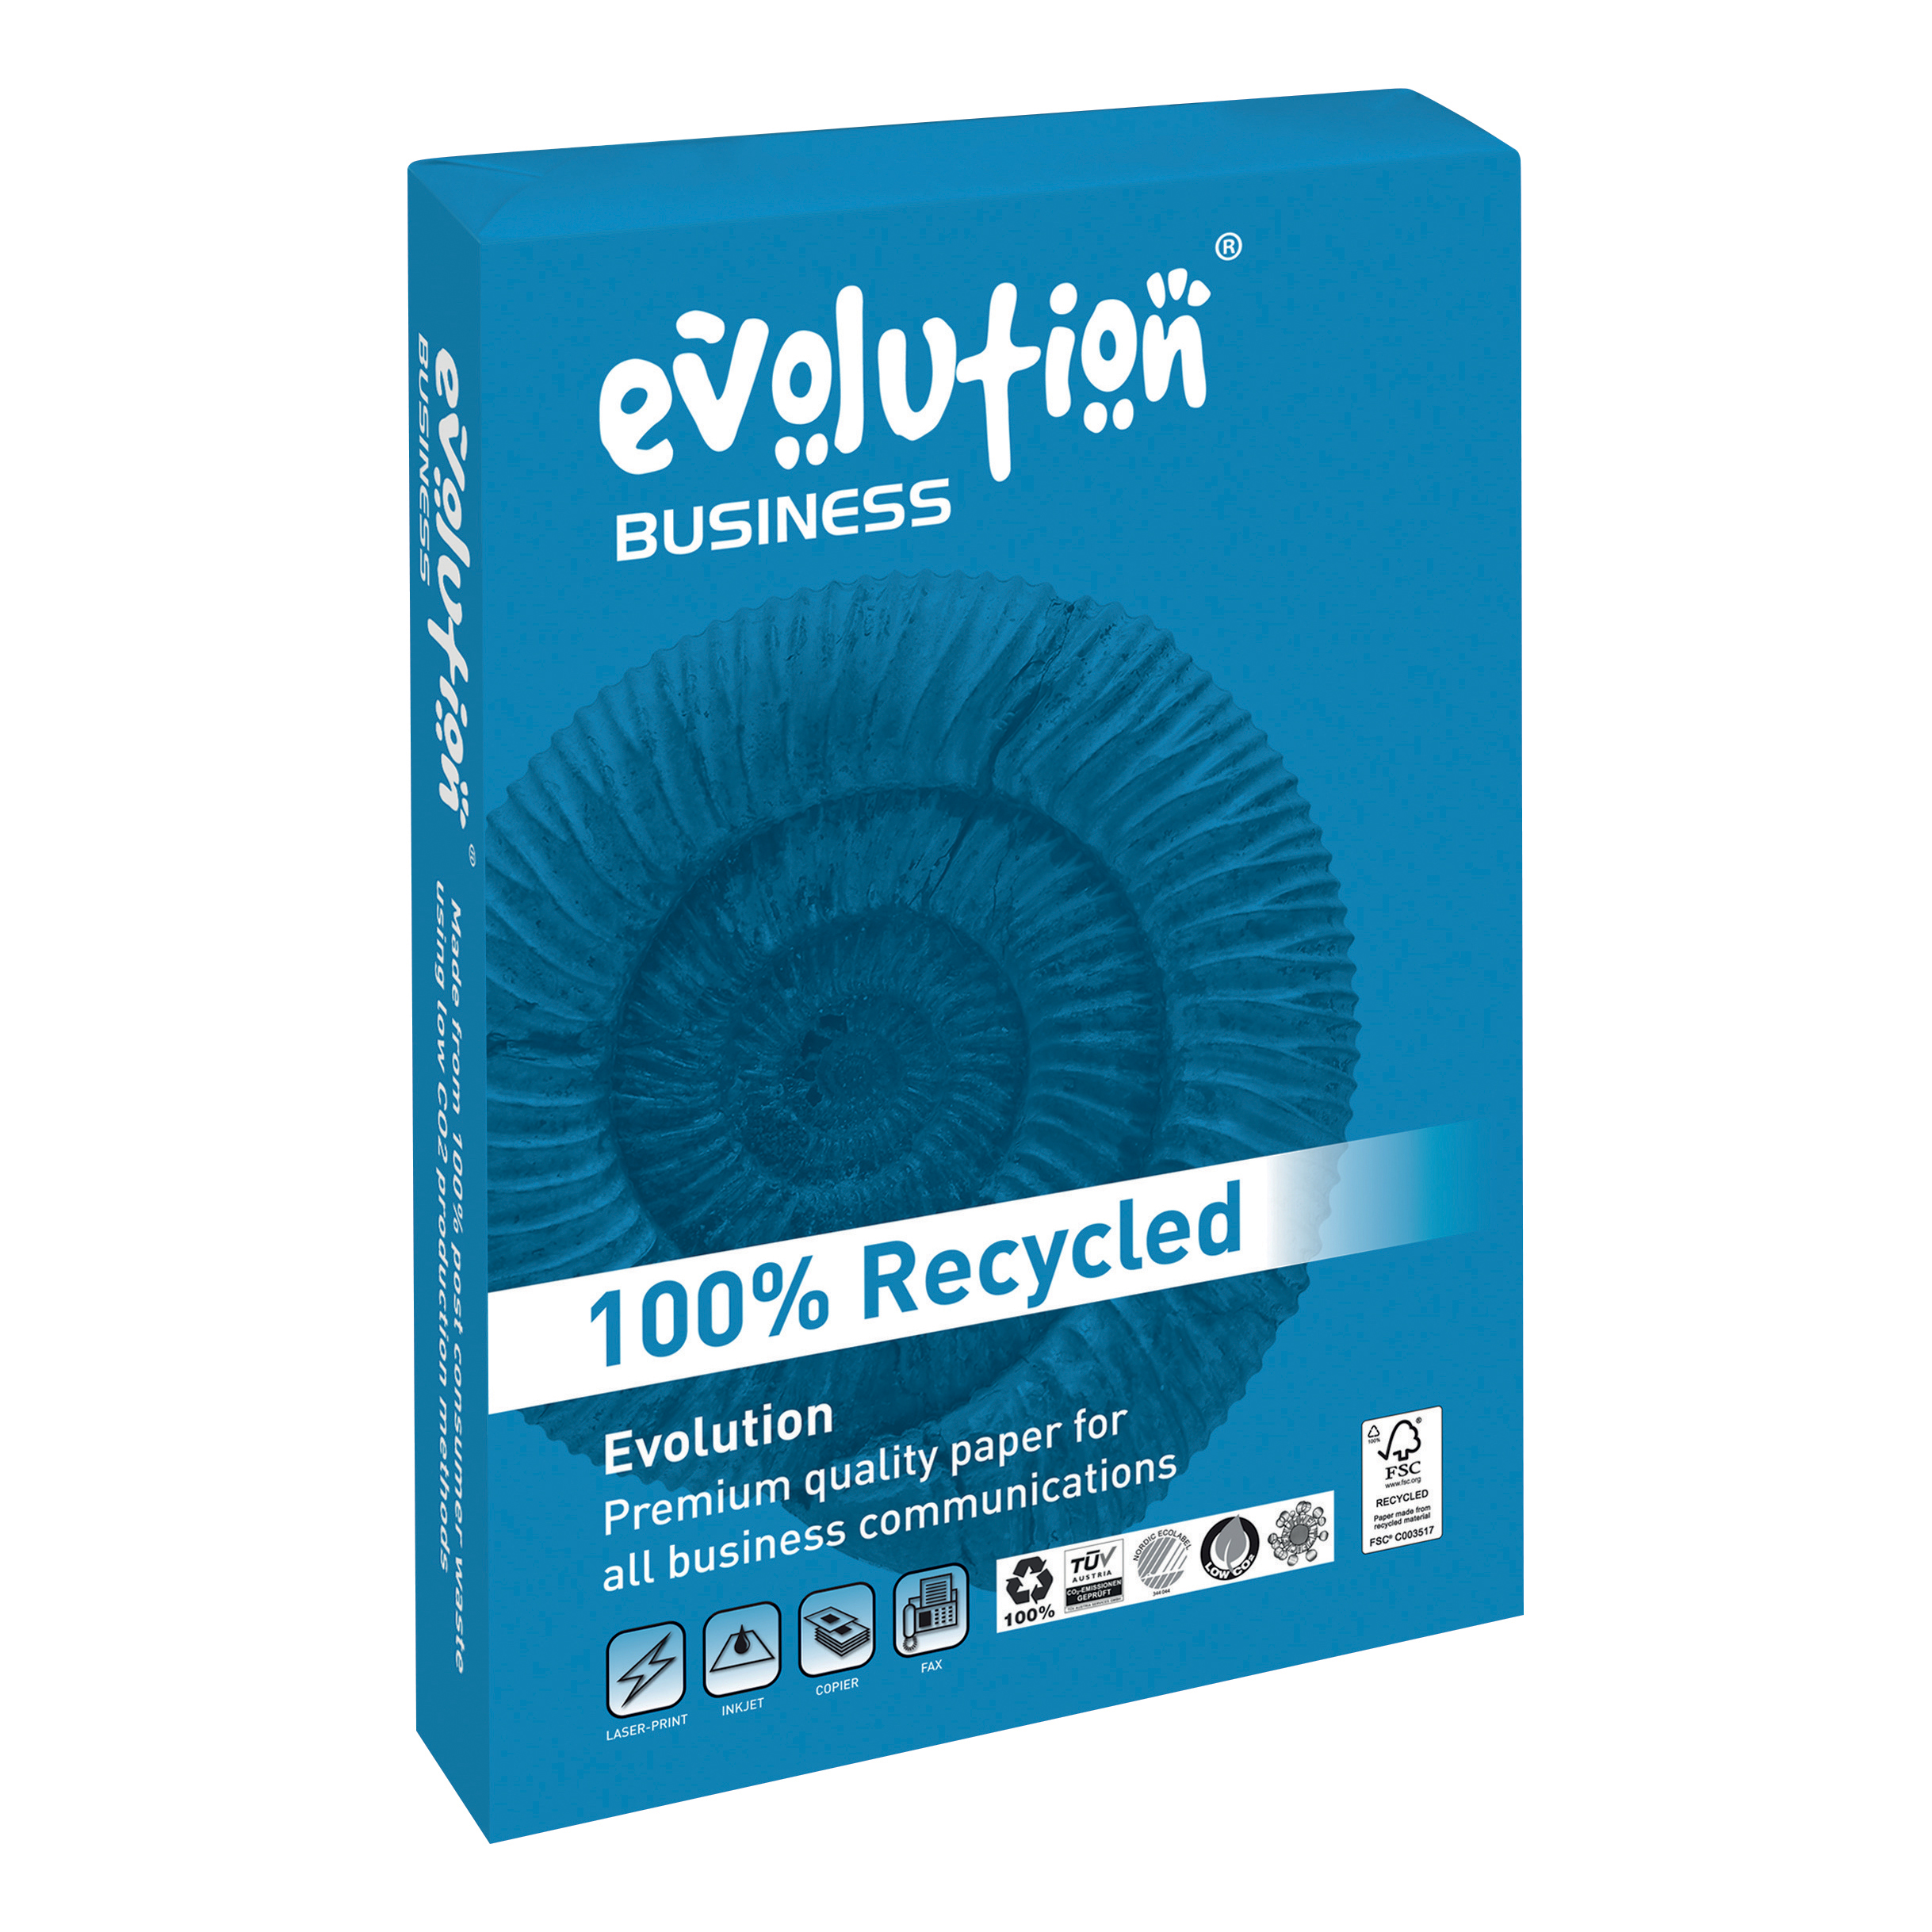 Evolution Business Paper FSC Recycled Ream-wrapped 100gsm A4 White Ref EVBU21100 500 Sheets